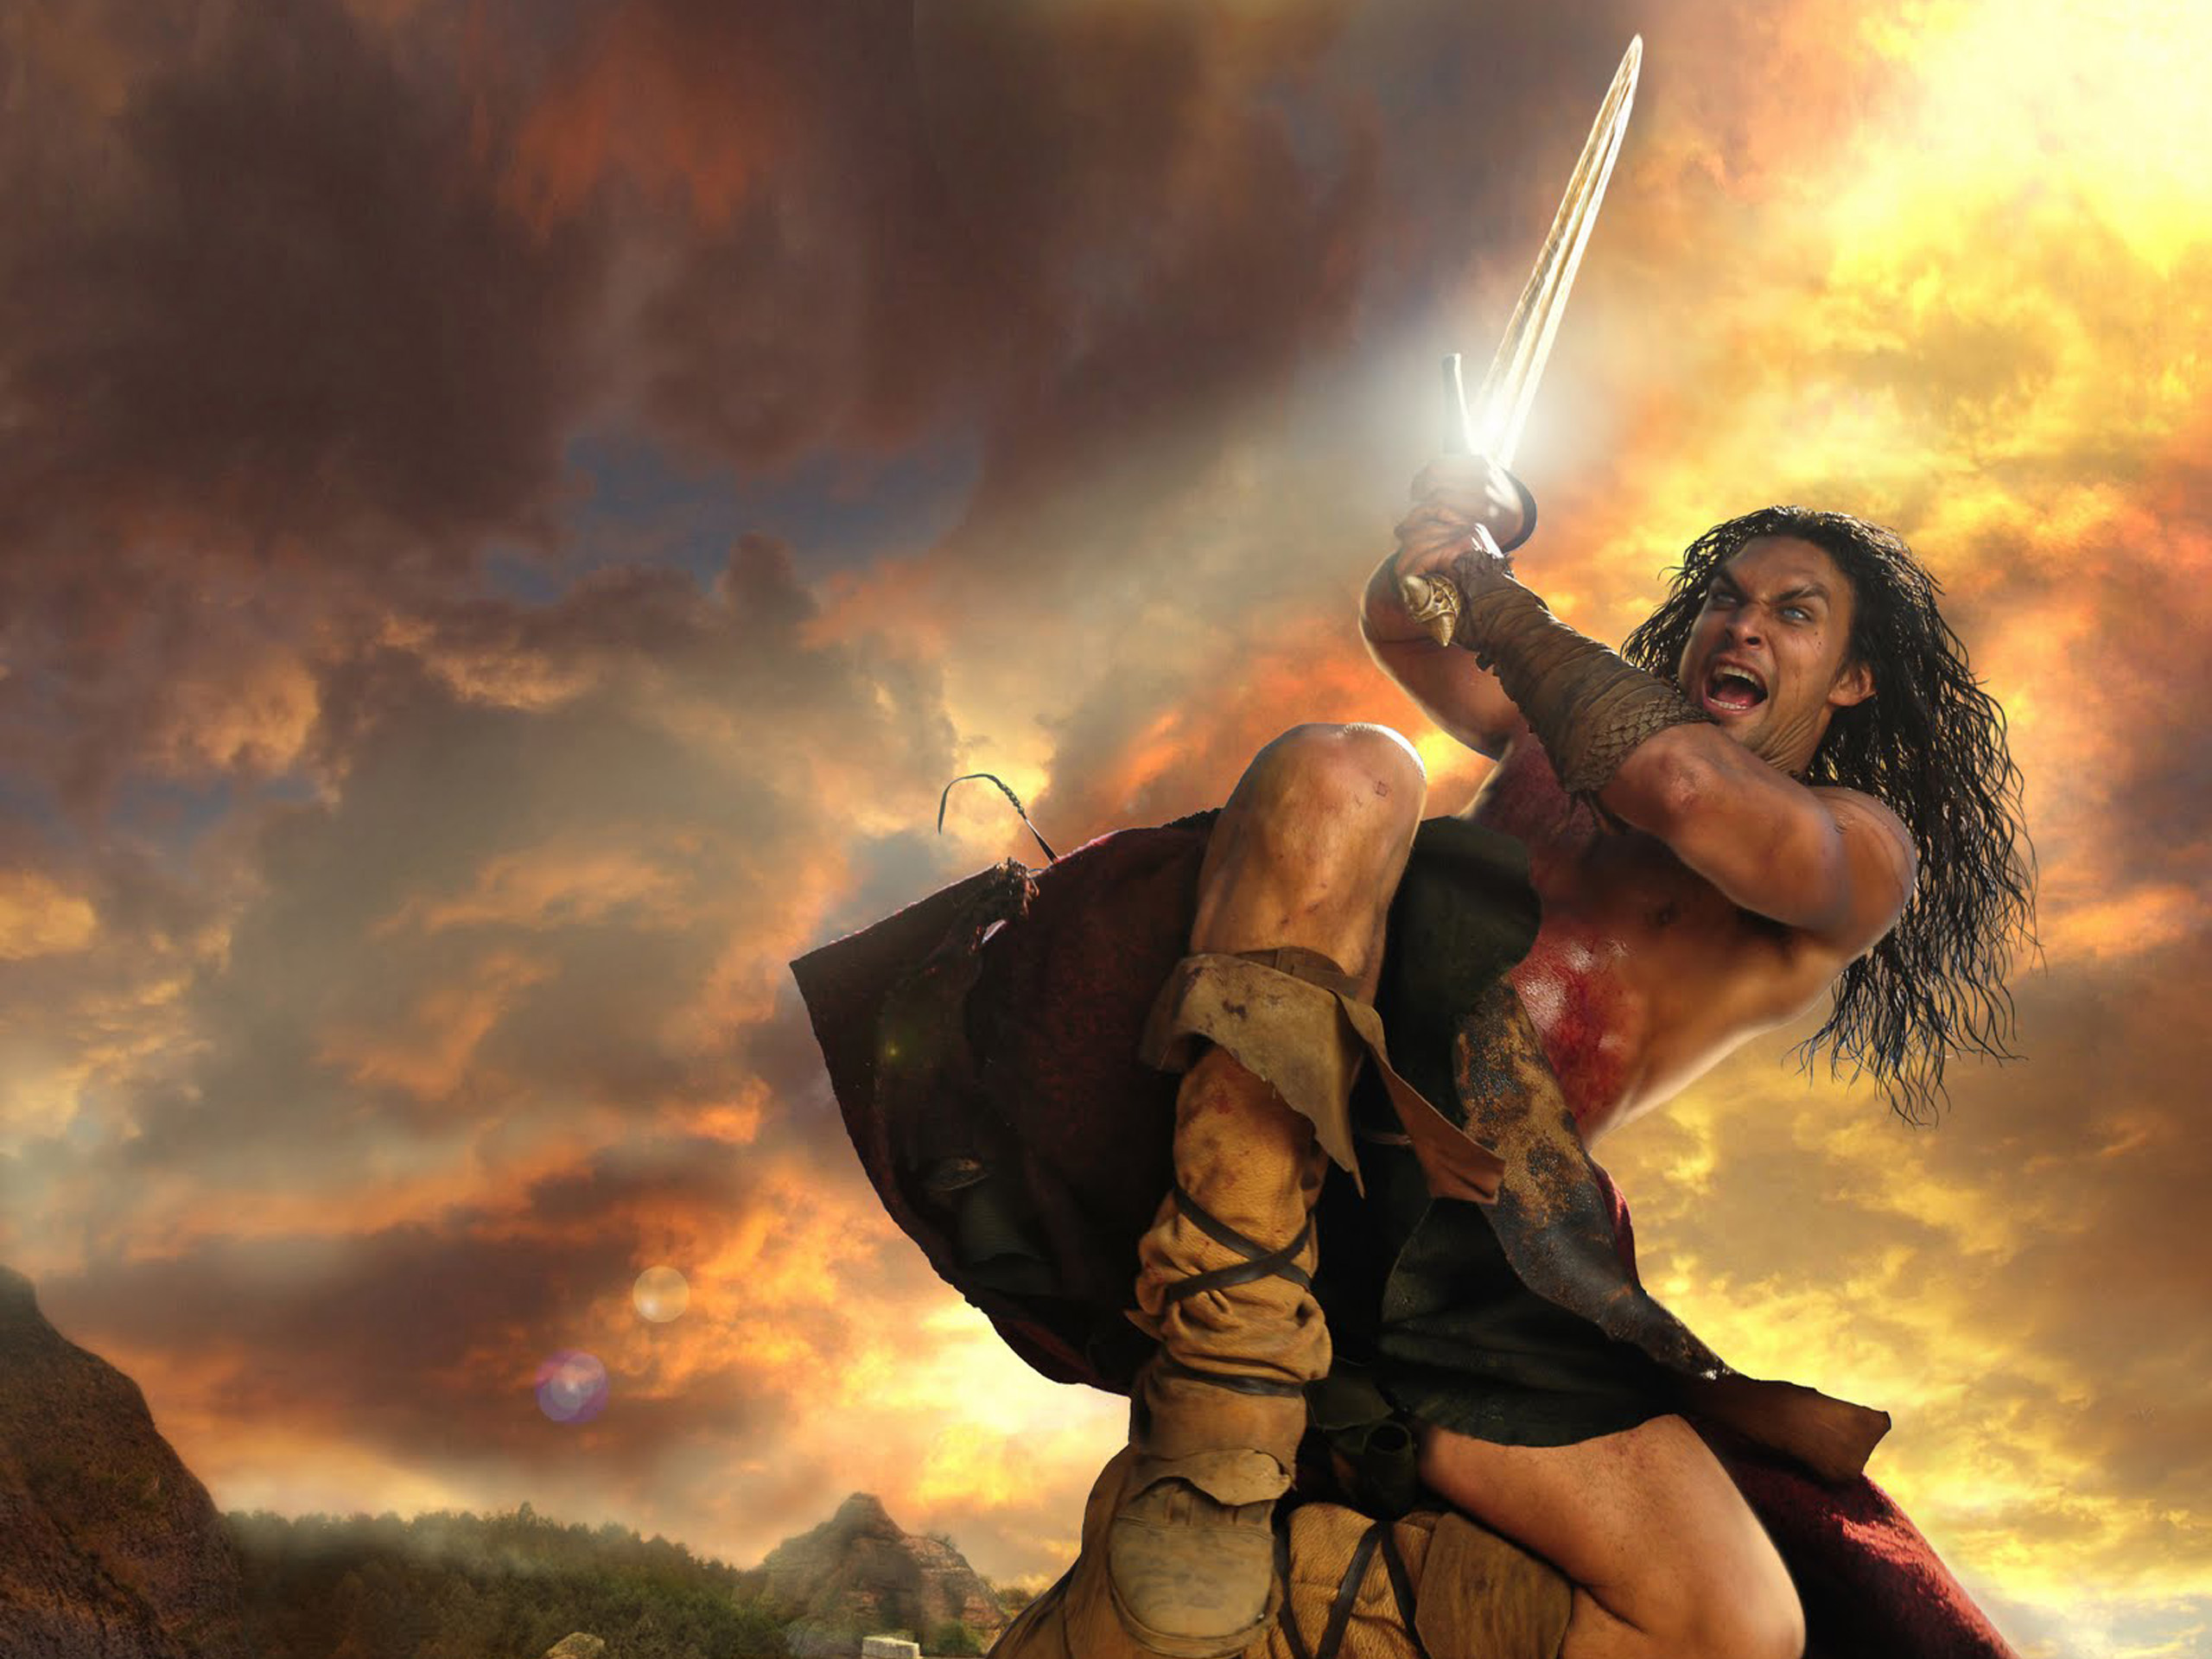 74 Jason Momoa Wallpaper on WallpaperSafari